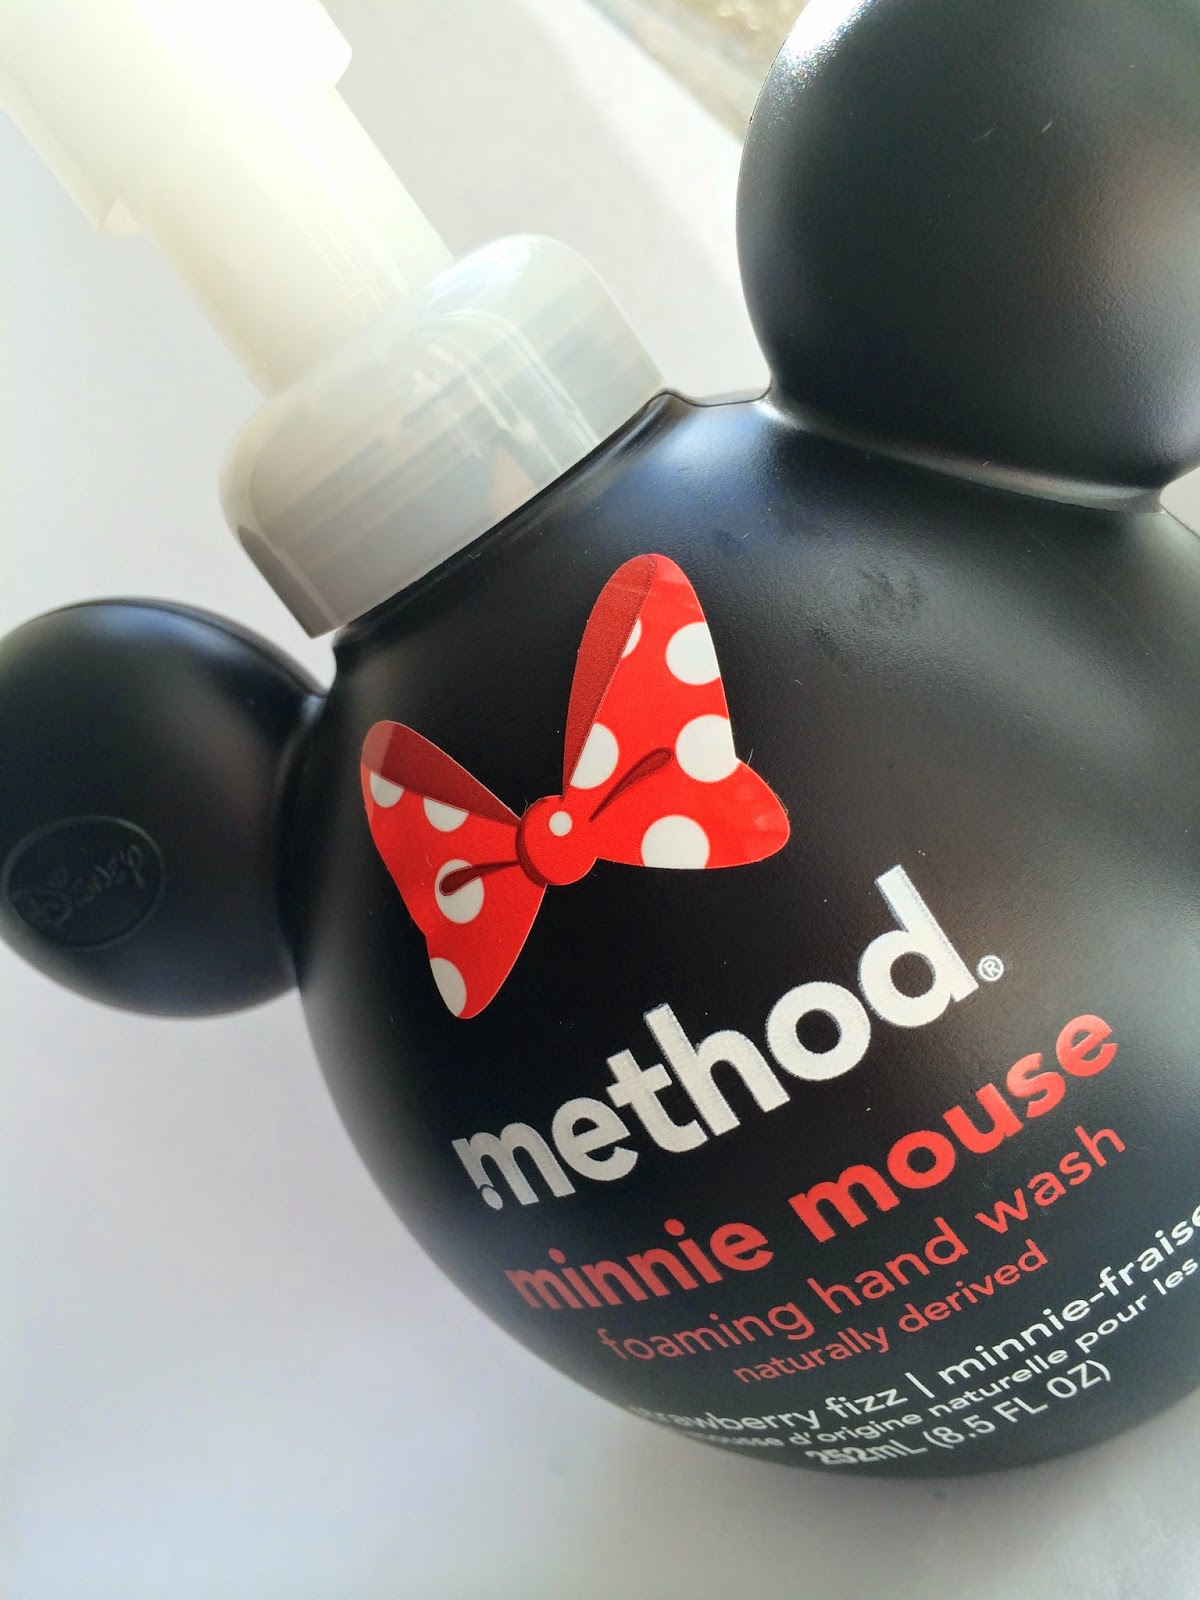 method-whistle-while-you-wash-foam-wash-minnie-mouse